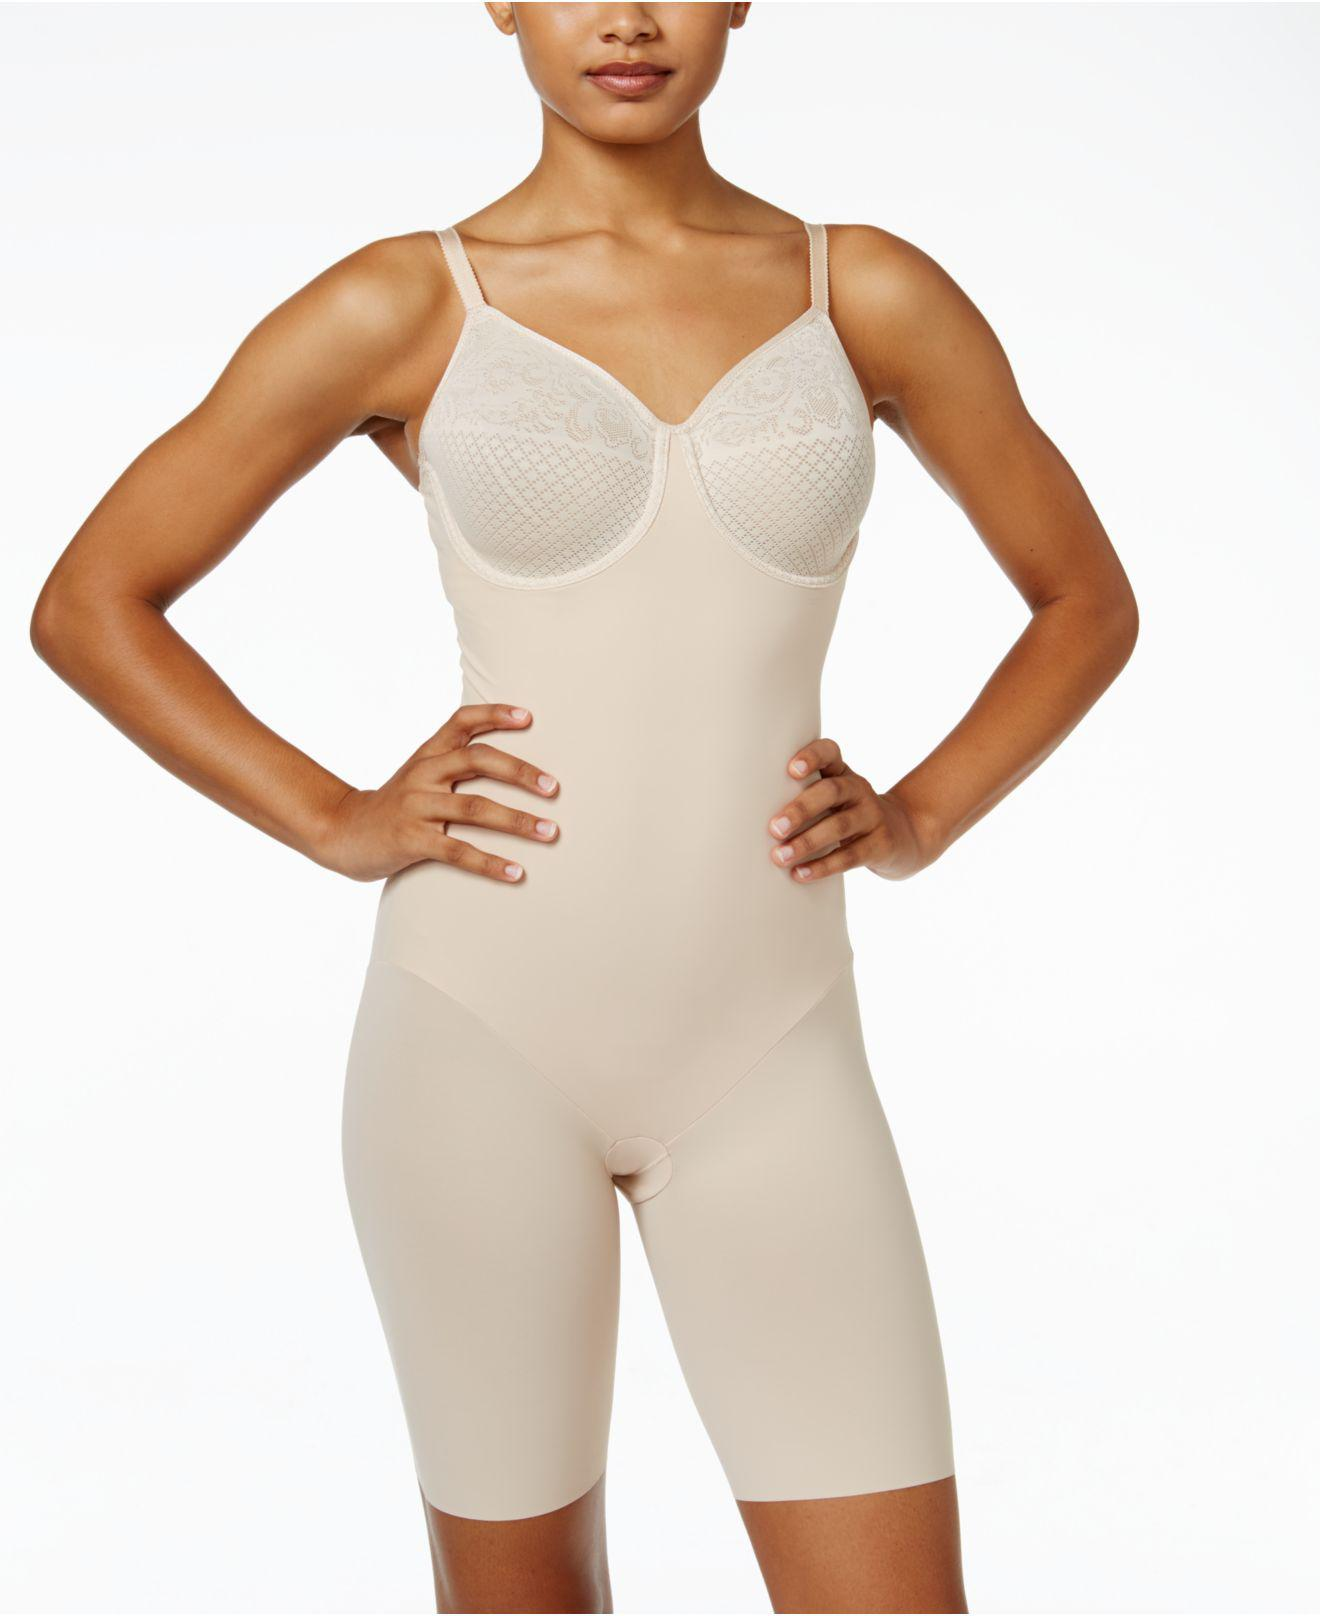 44bc01ecd5 Lyst - Wacoal Visual Effects Firm Control Body Shaper 802210 in Natural